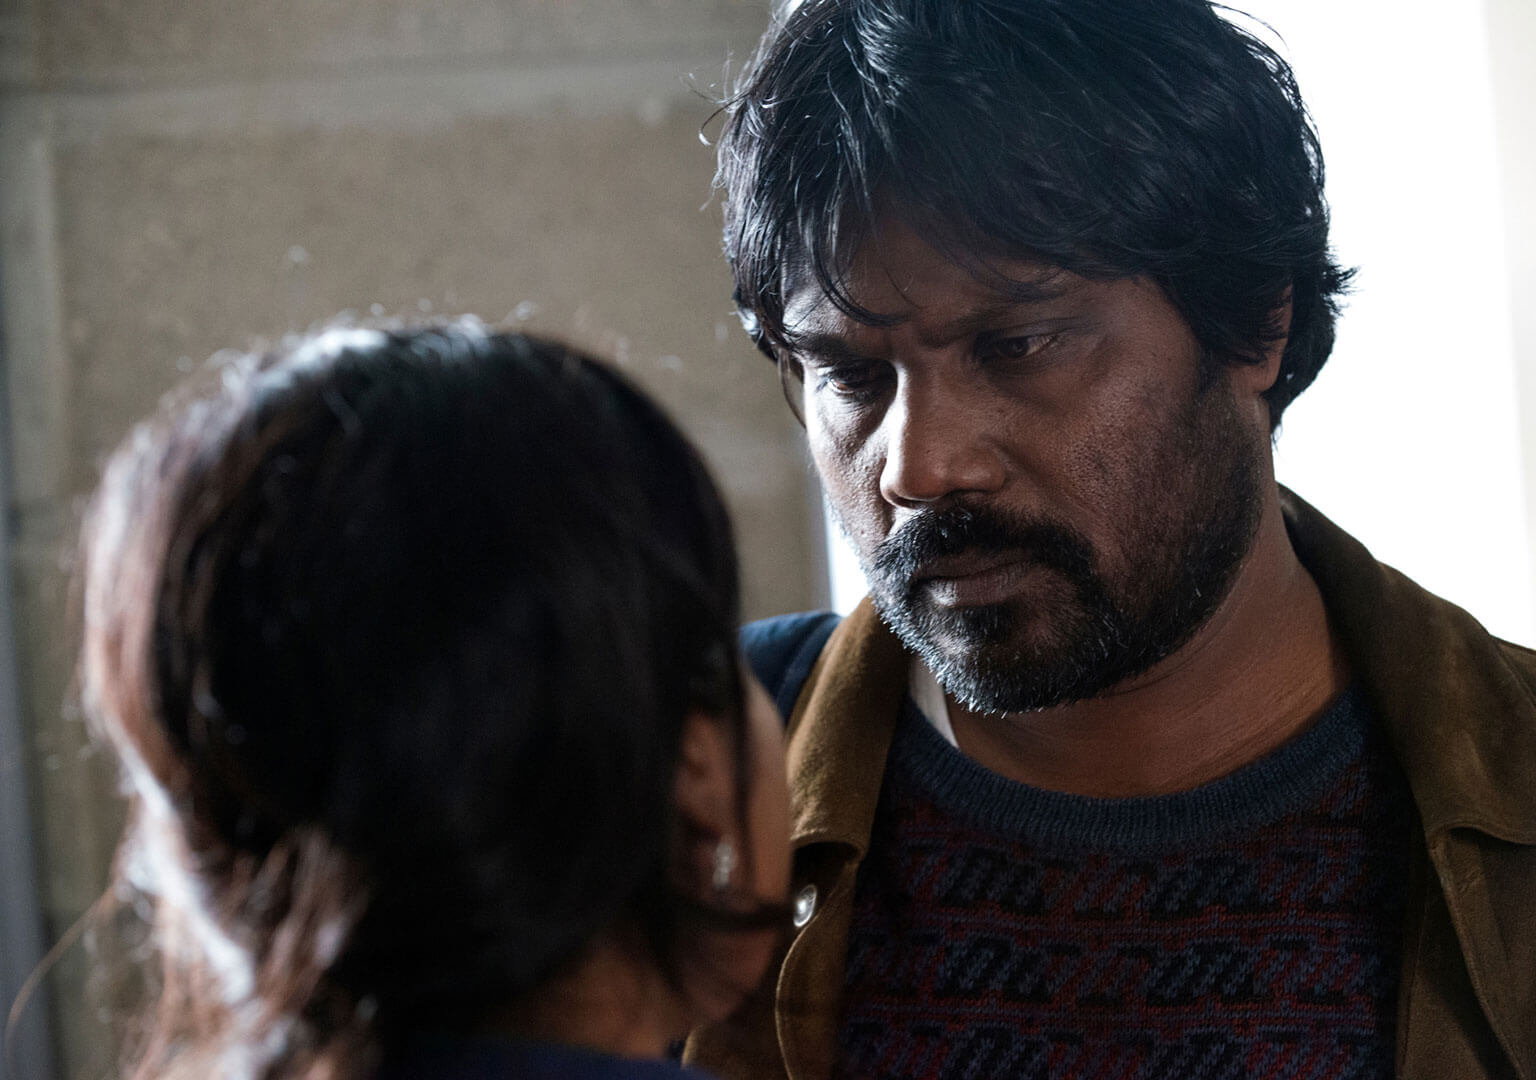 Video still from Dheepan